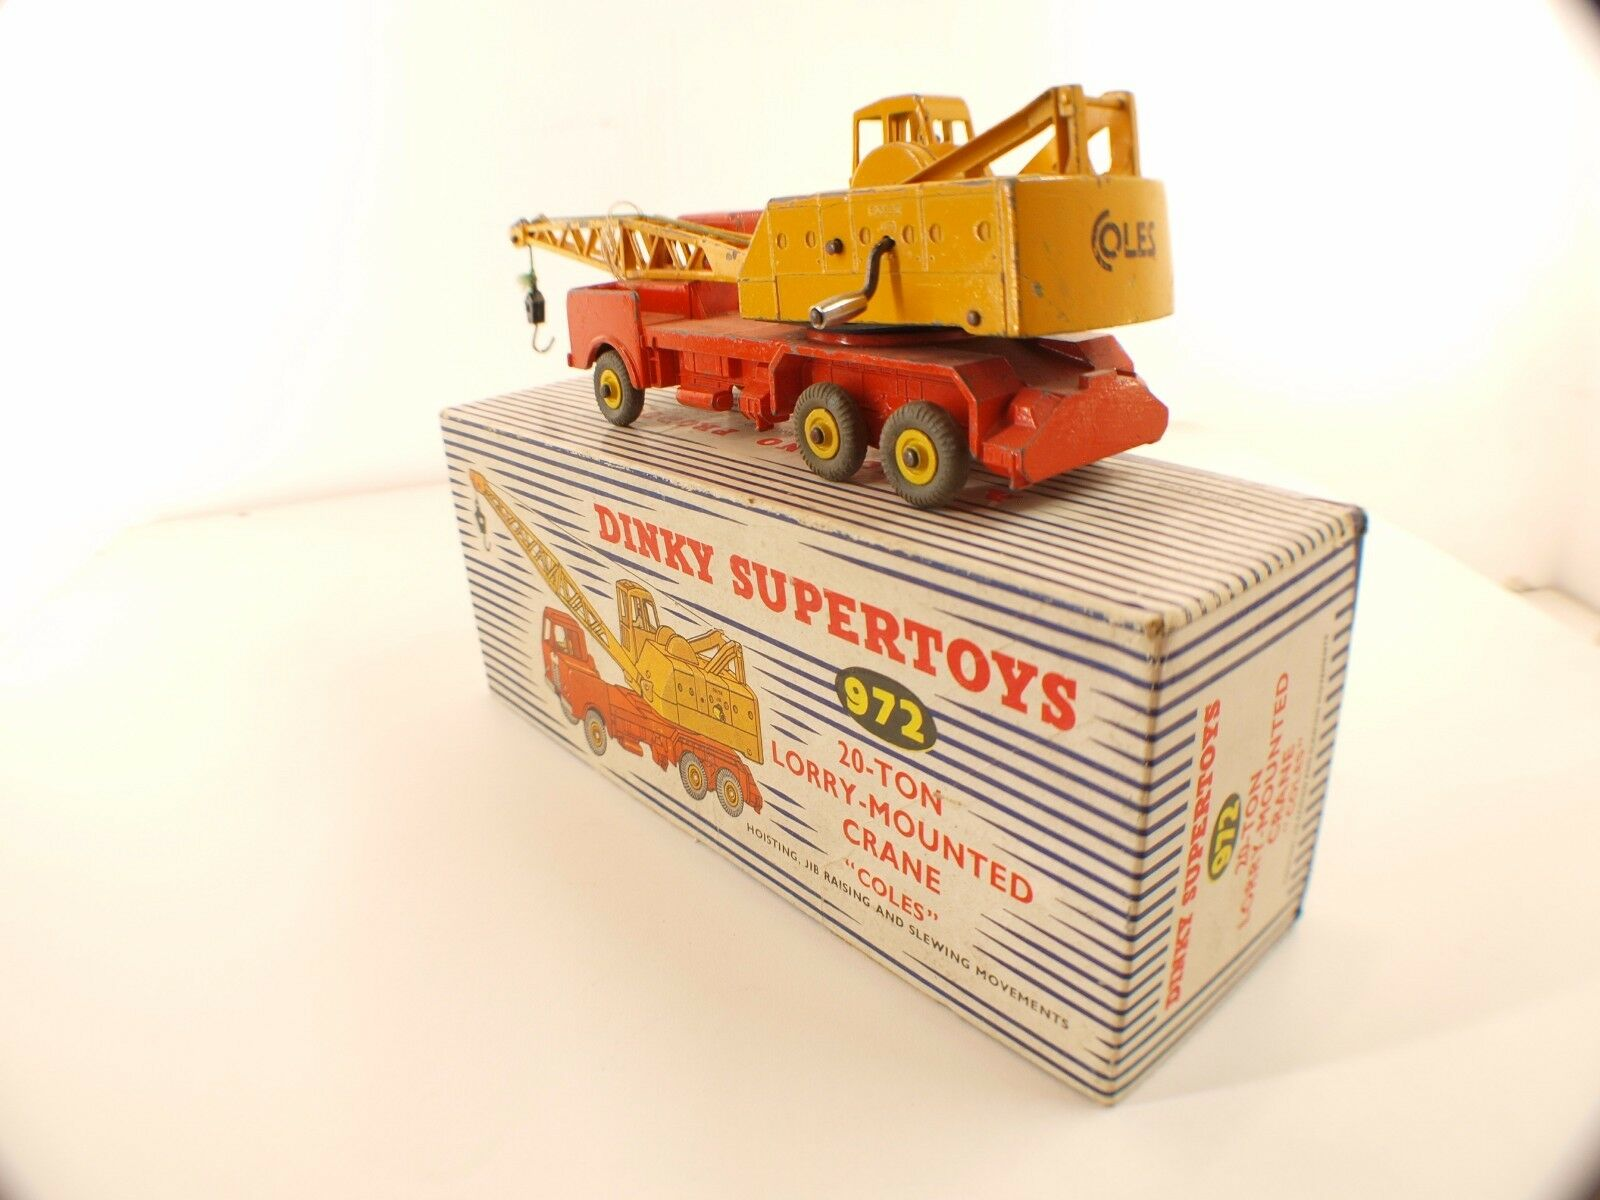 Dinky Toys GB n° 972 camion 20T Lorry Lorry Lorry Mounted Crane grue en boîte | Supérieurs Performances